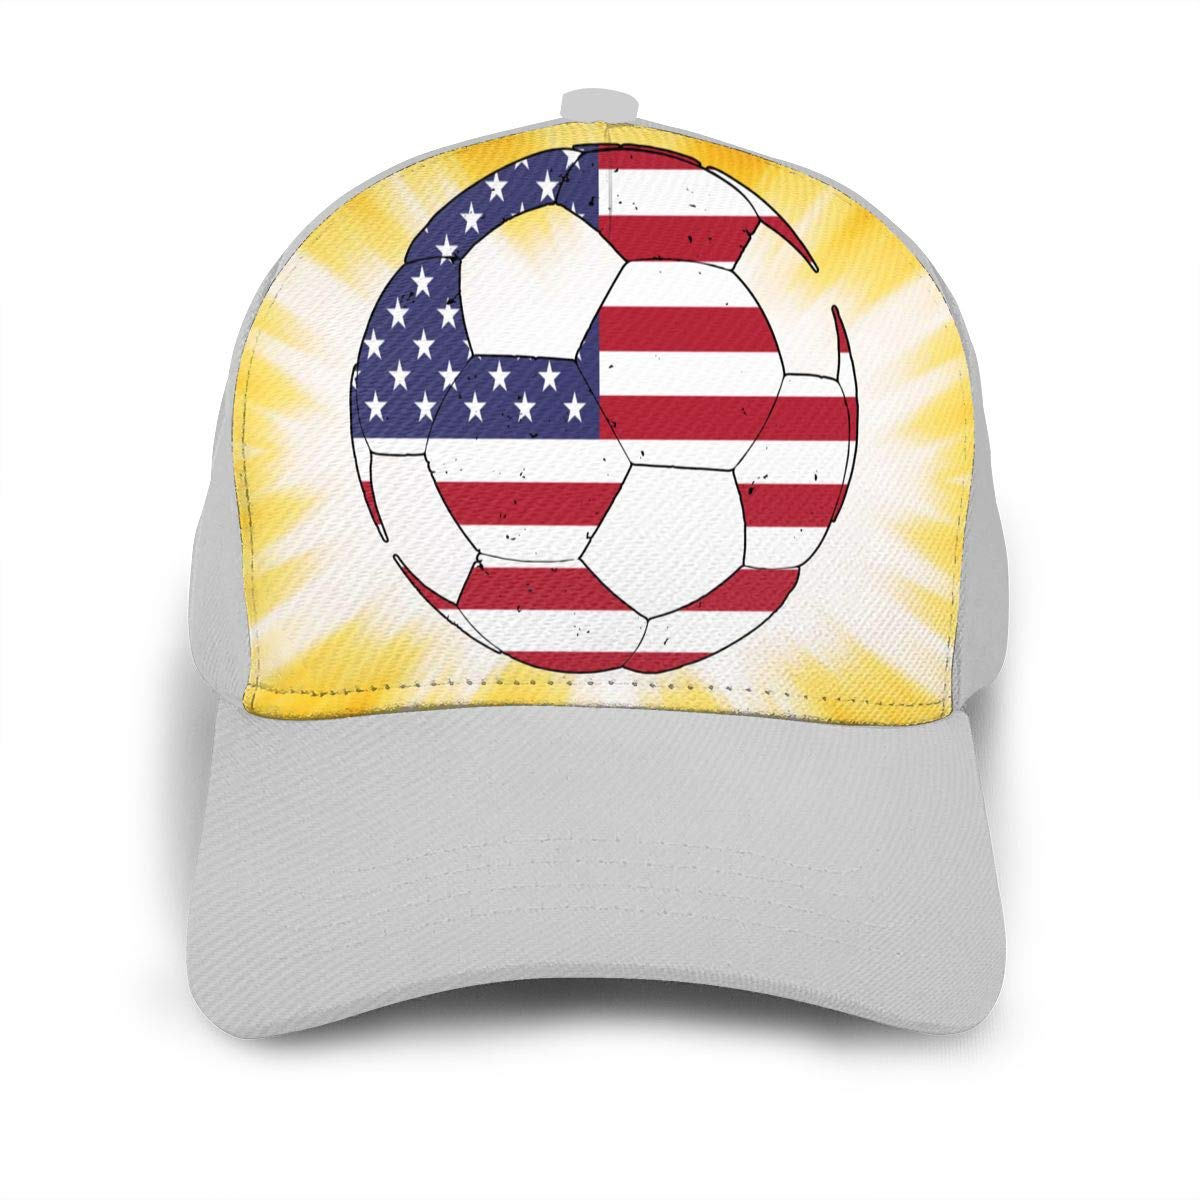 American Flag Football Soccer Peaked Cap for Mens and Womens Cotton Cricket Cap